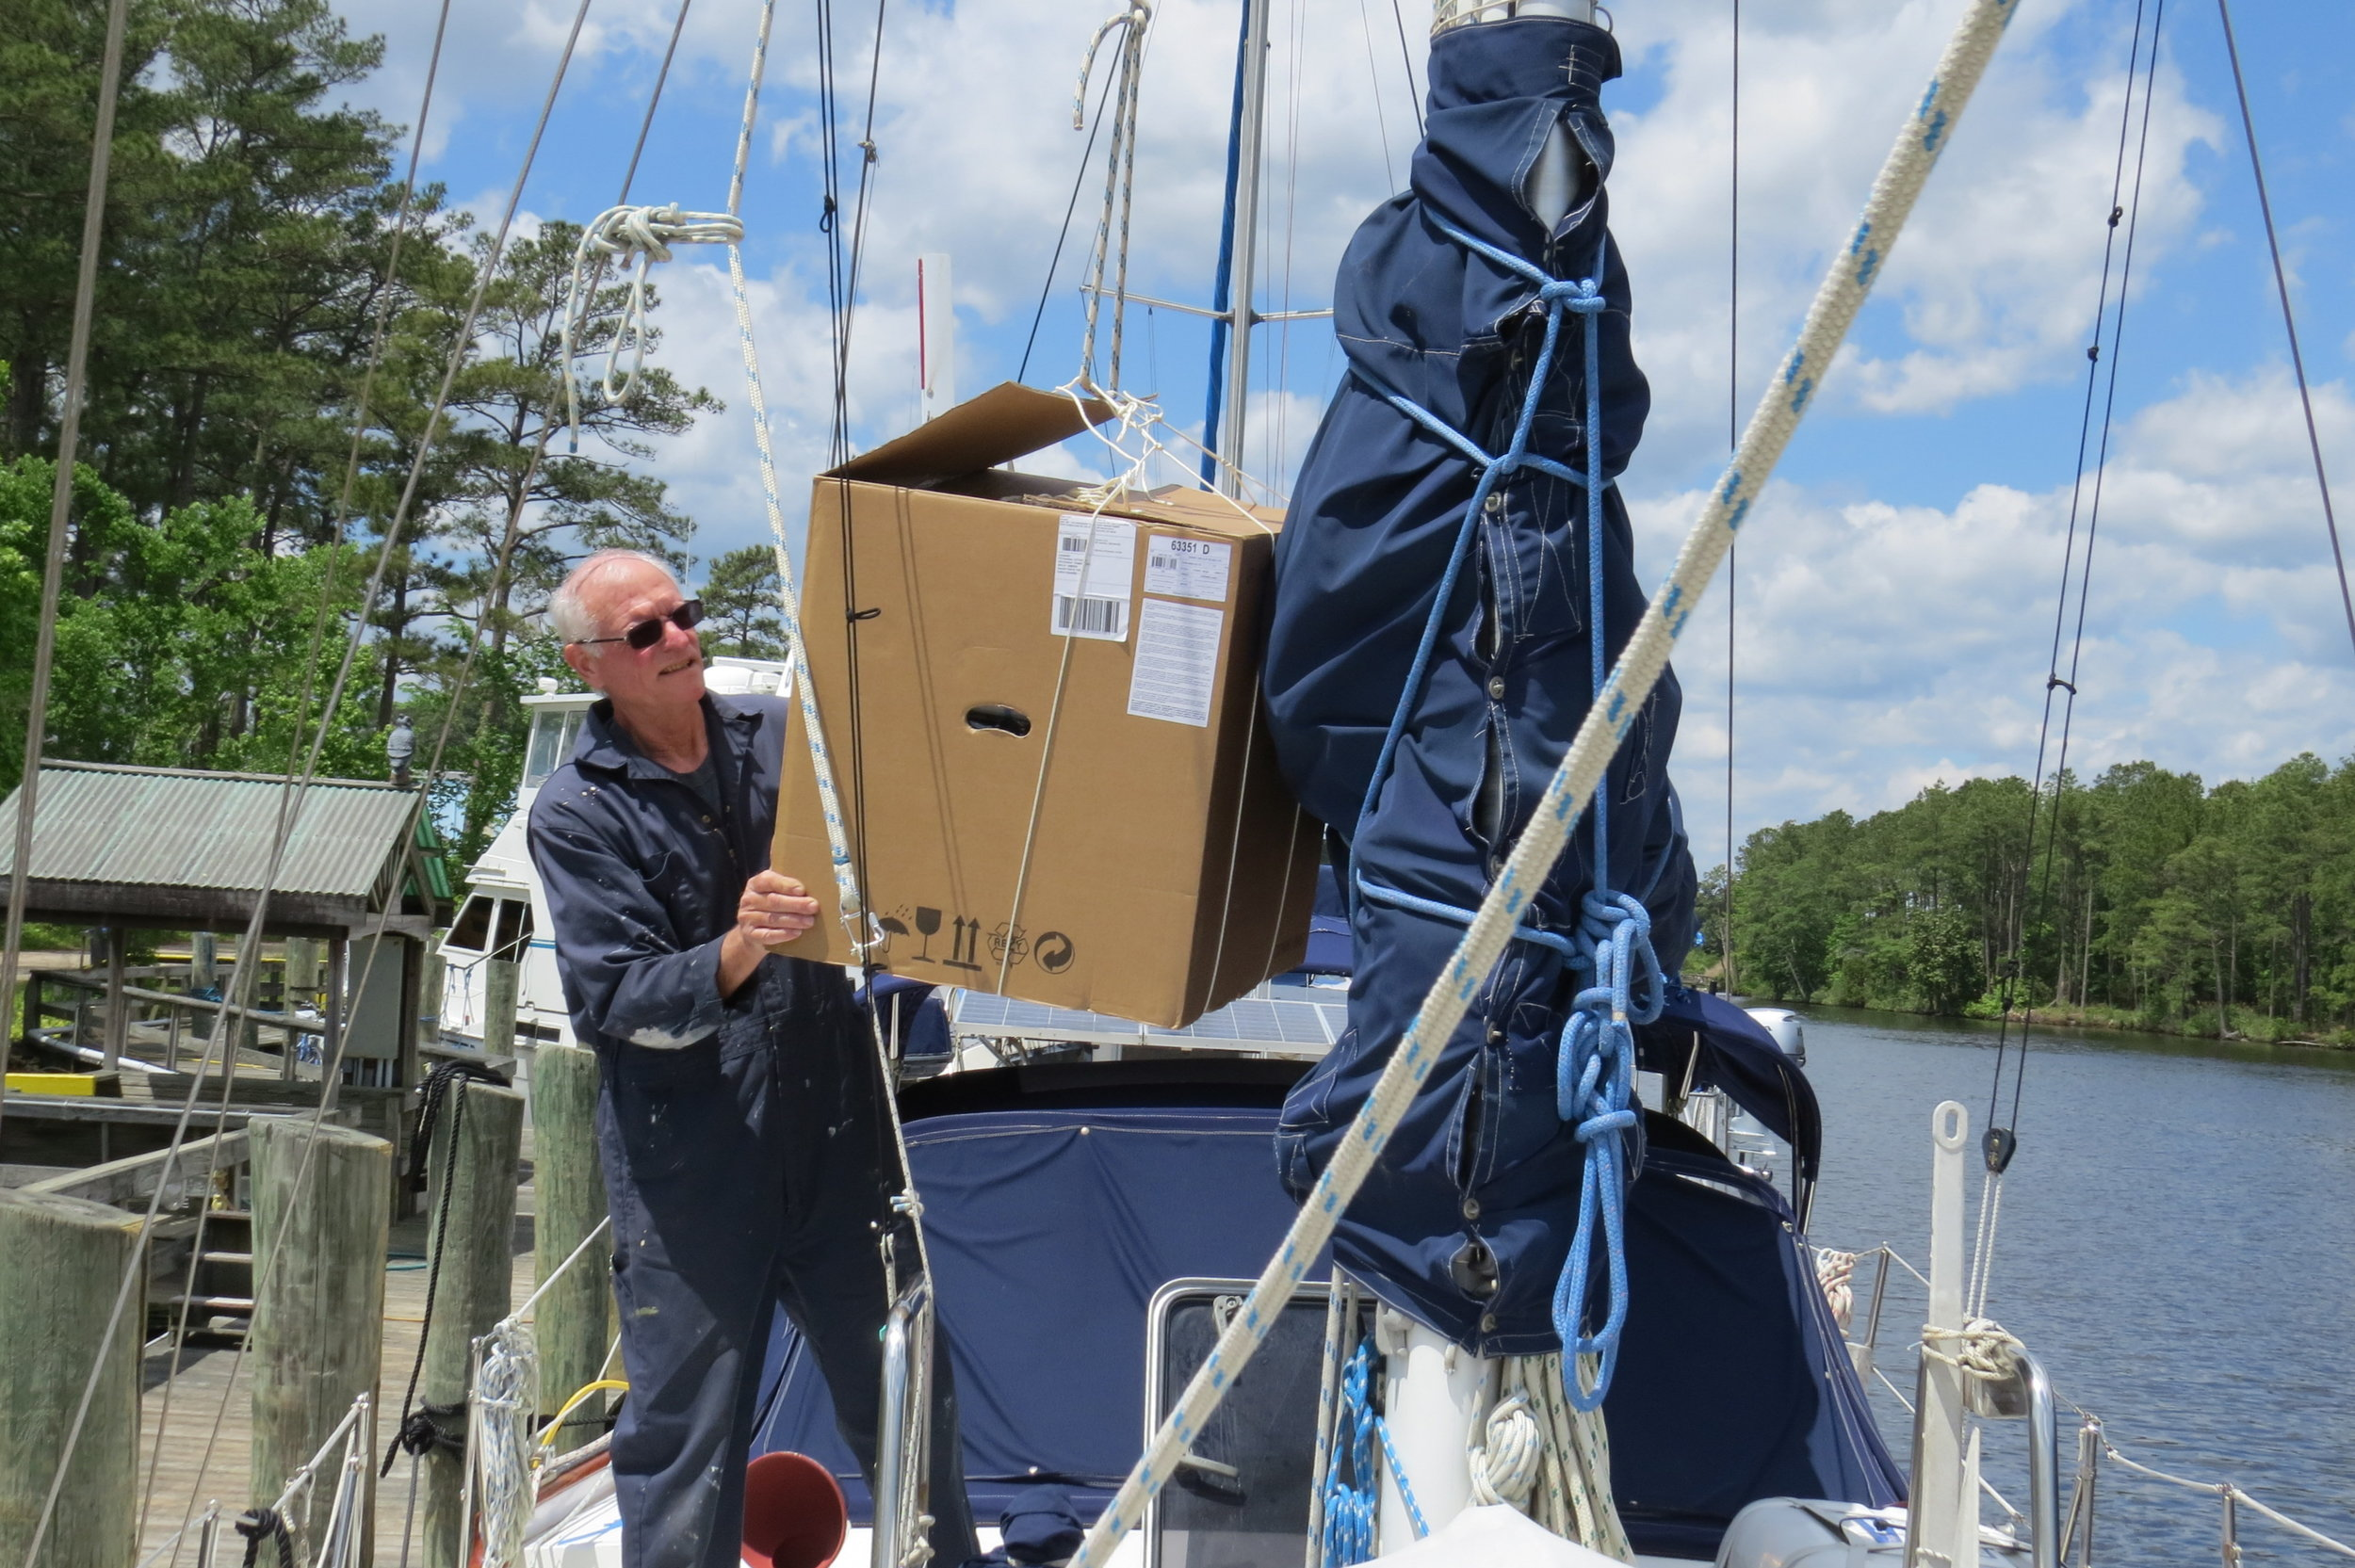 We used the windlass to hoist it up and lowered it through the saloon hatch.